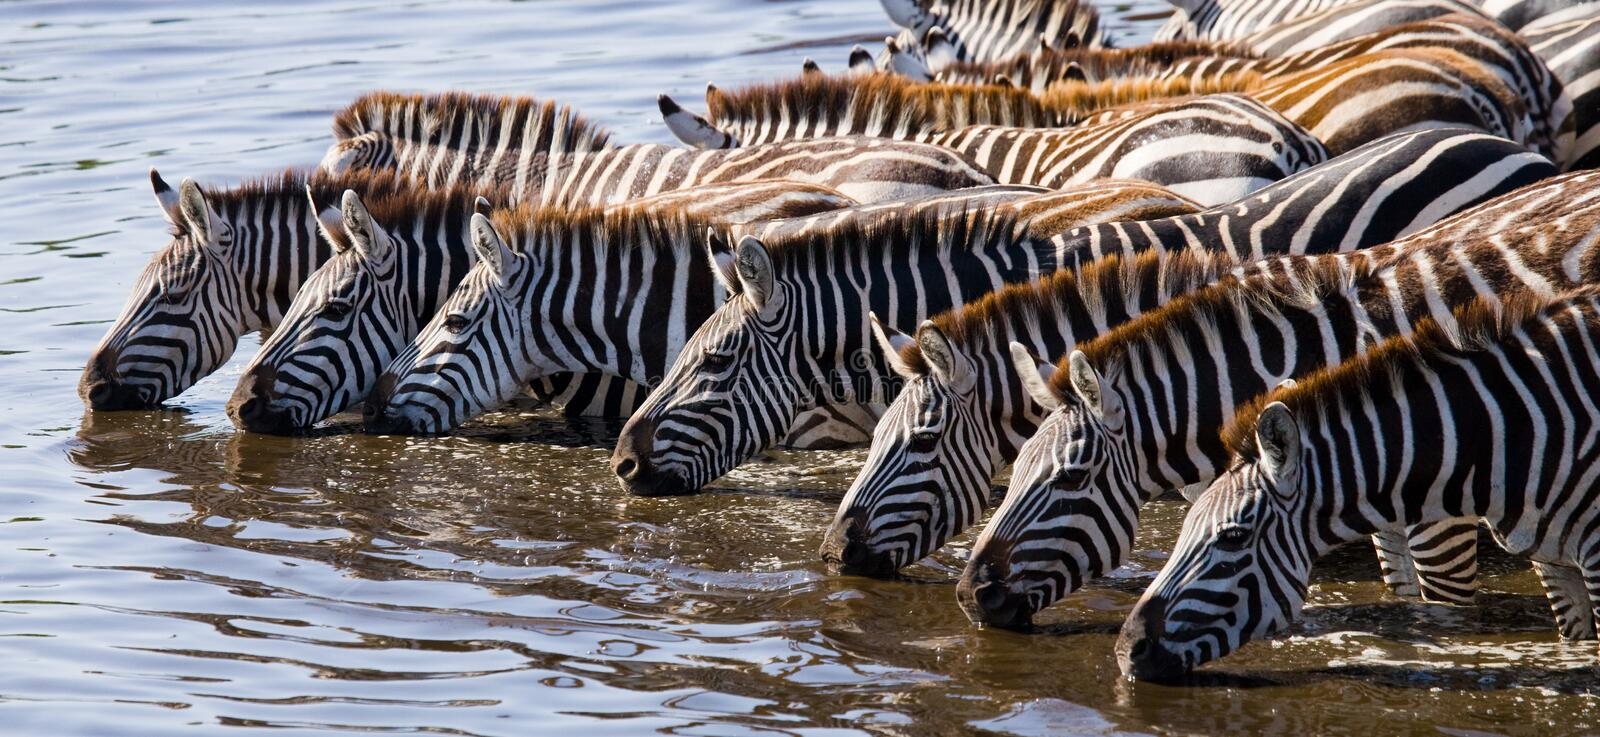 Group of zebras drinking water from the river. Kenya. Tanzania. National Park. Serengeti. Maasai Mara. An excellent illustration royalty free stock photo